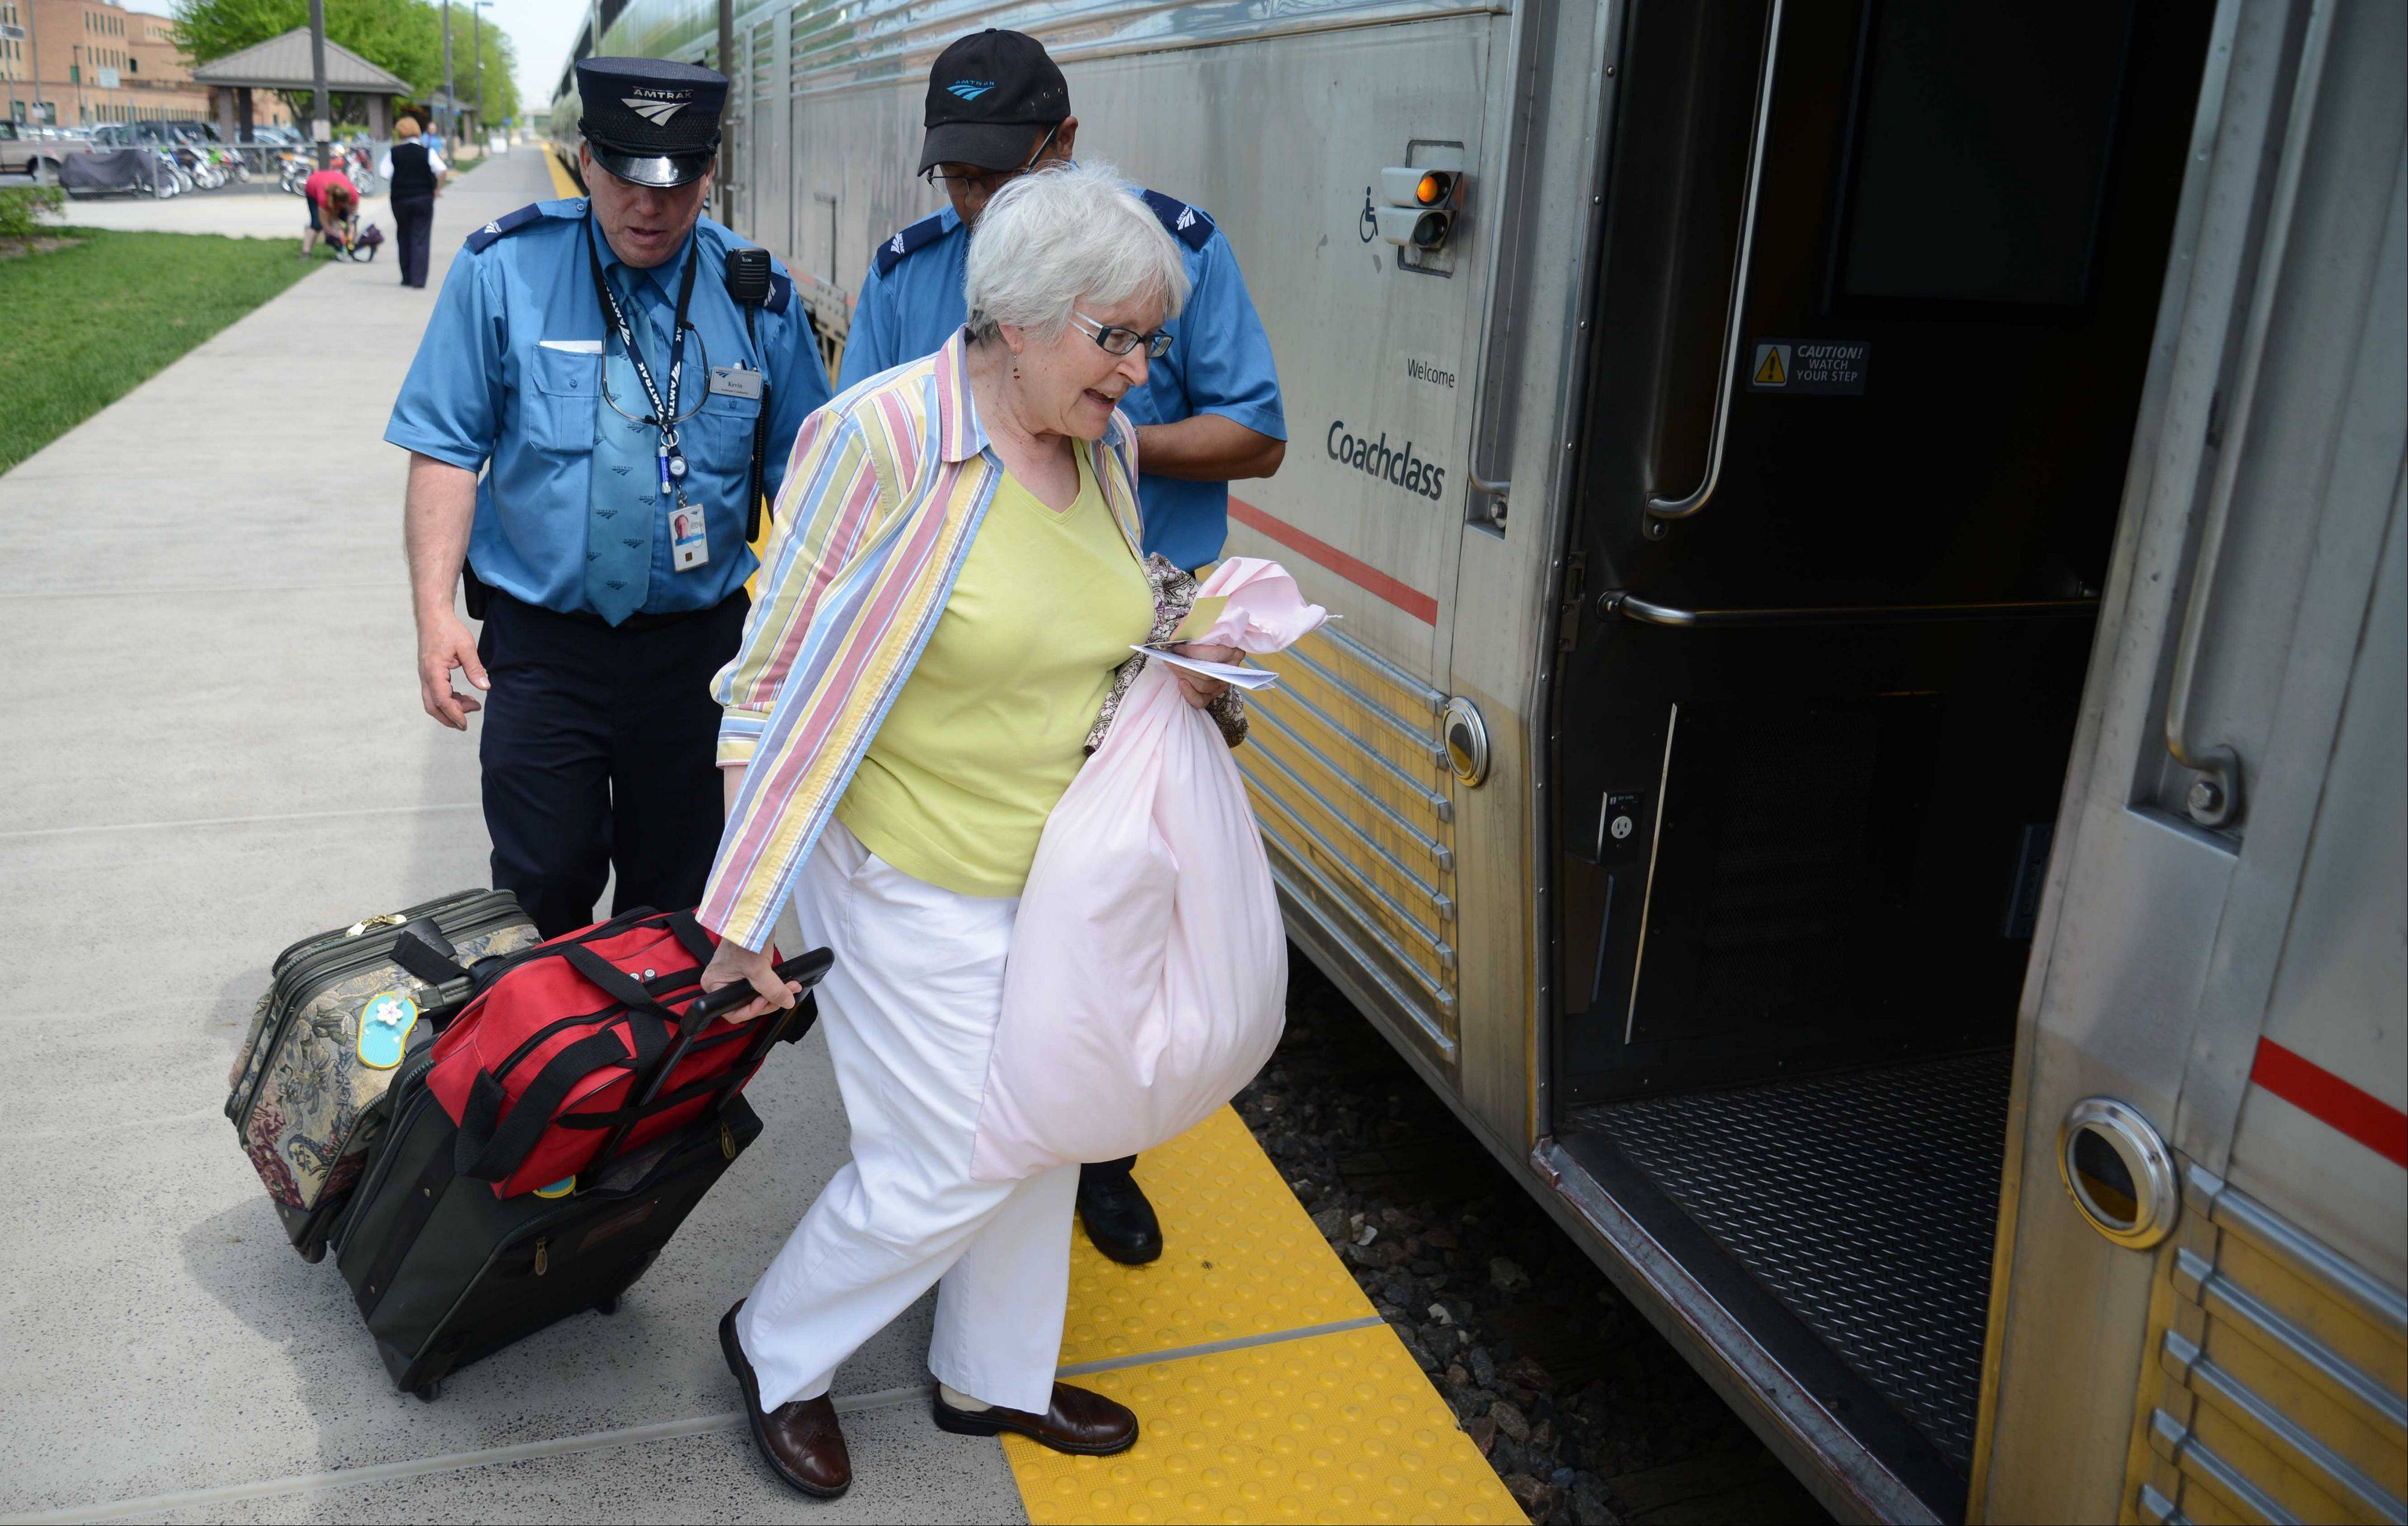 Tyra Harris of Denver boards the Amtrak's California Zephyr in Naperville. She was heading home after a visit with relatives in Lombard.